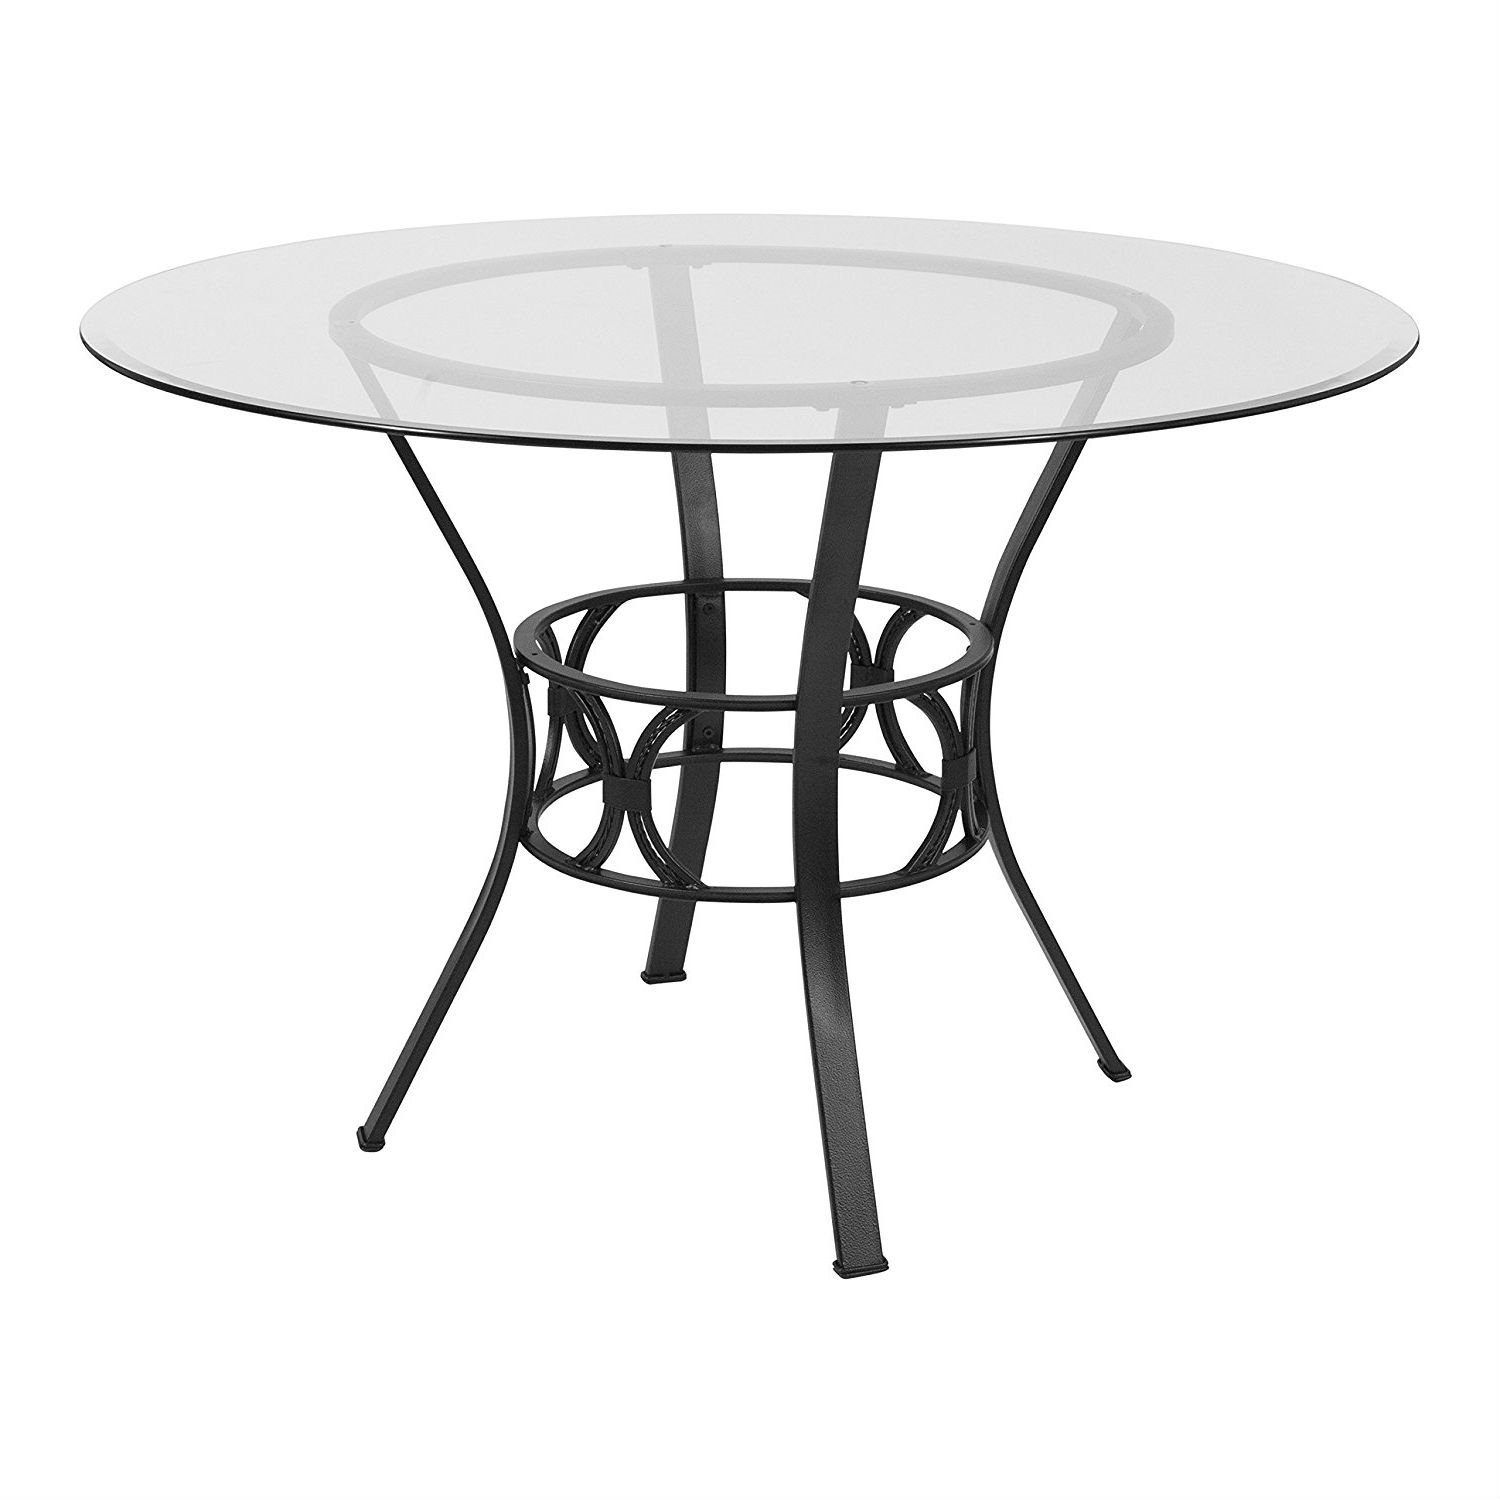 Contemporary 45 Inch Round Glass Dining Table With Black Metal Frame